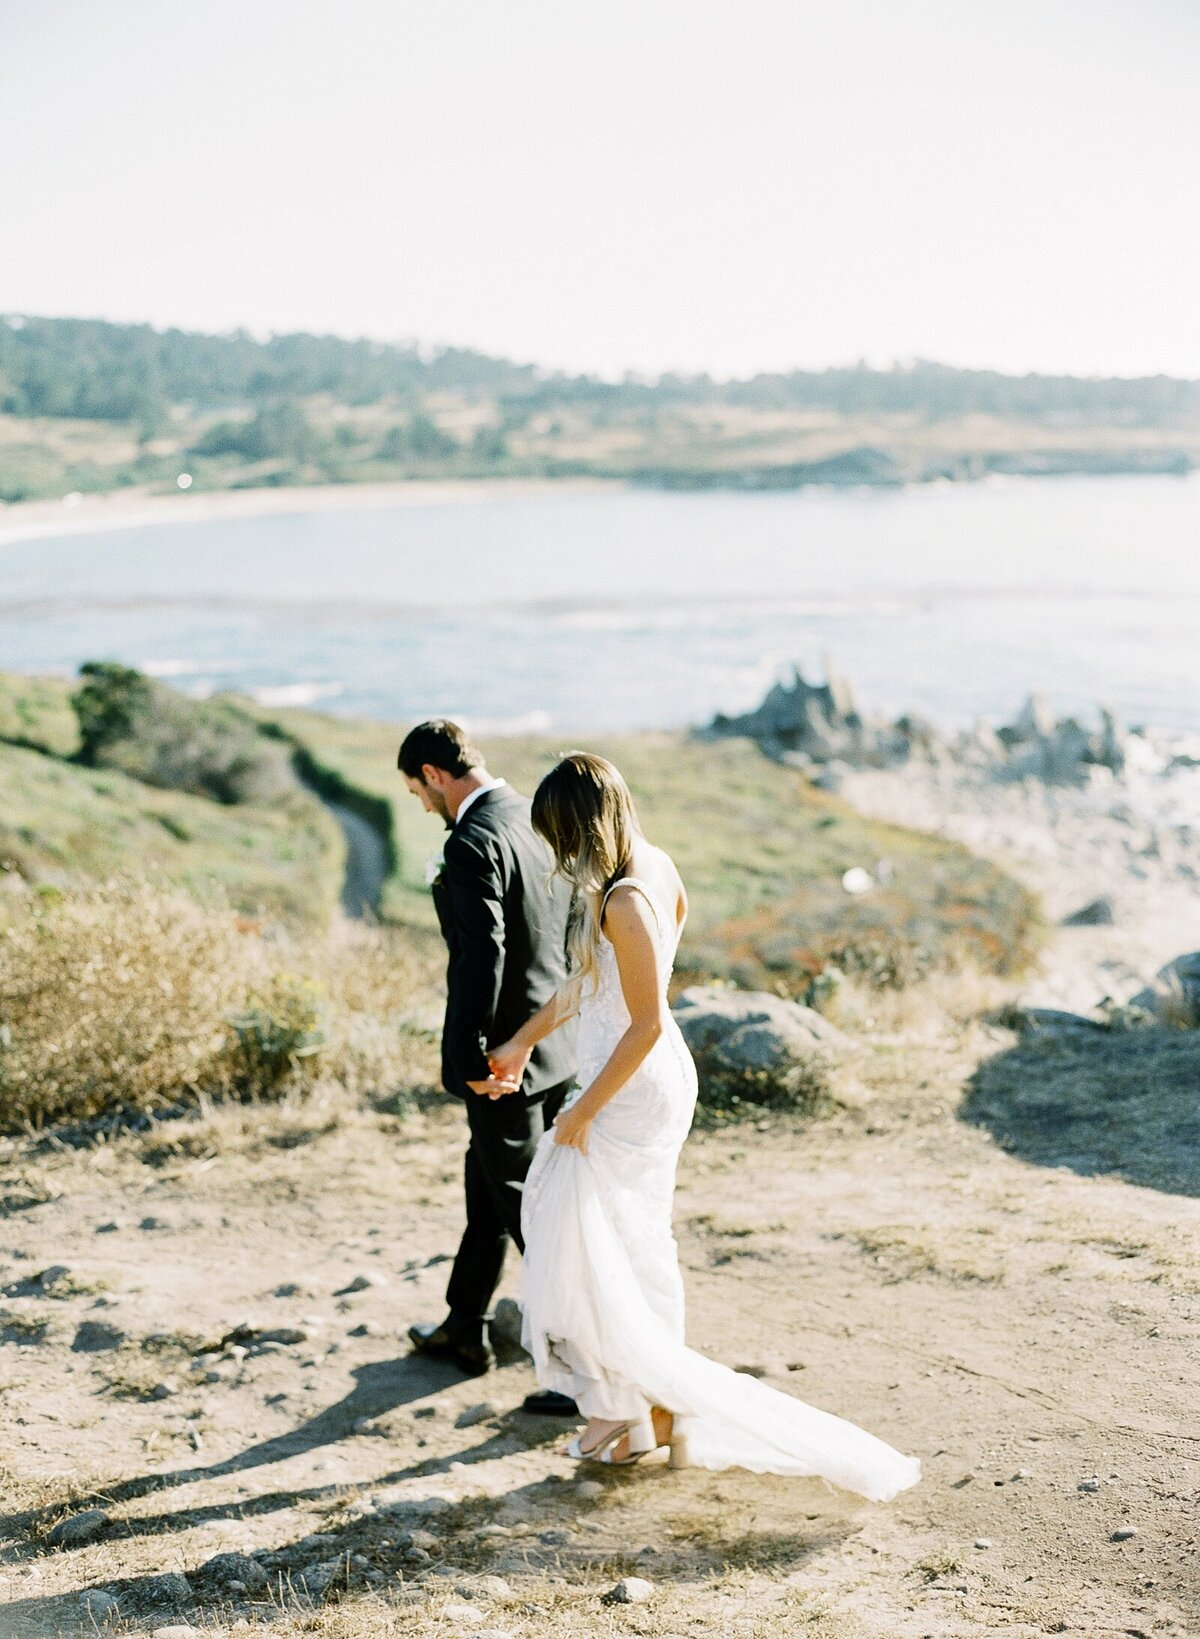 secret-elopement-big-sur-california-film-photographer